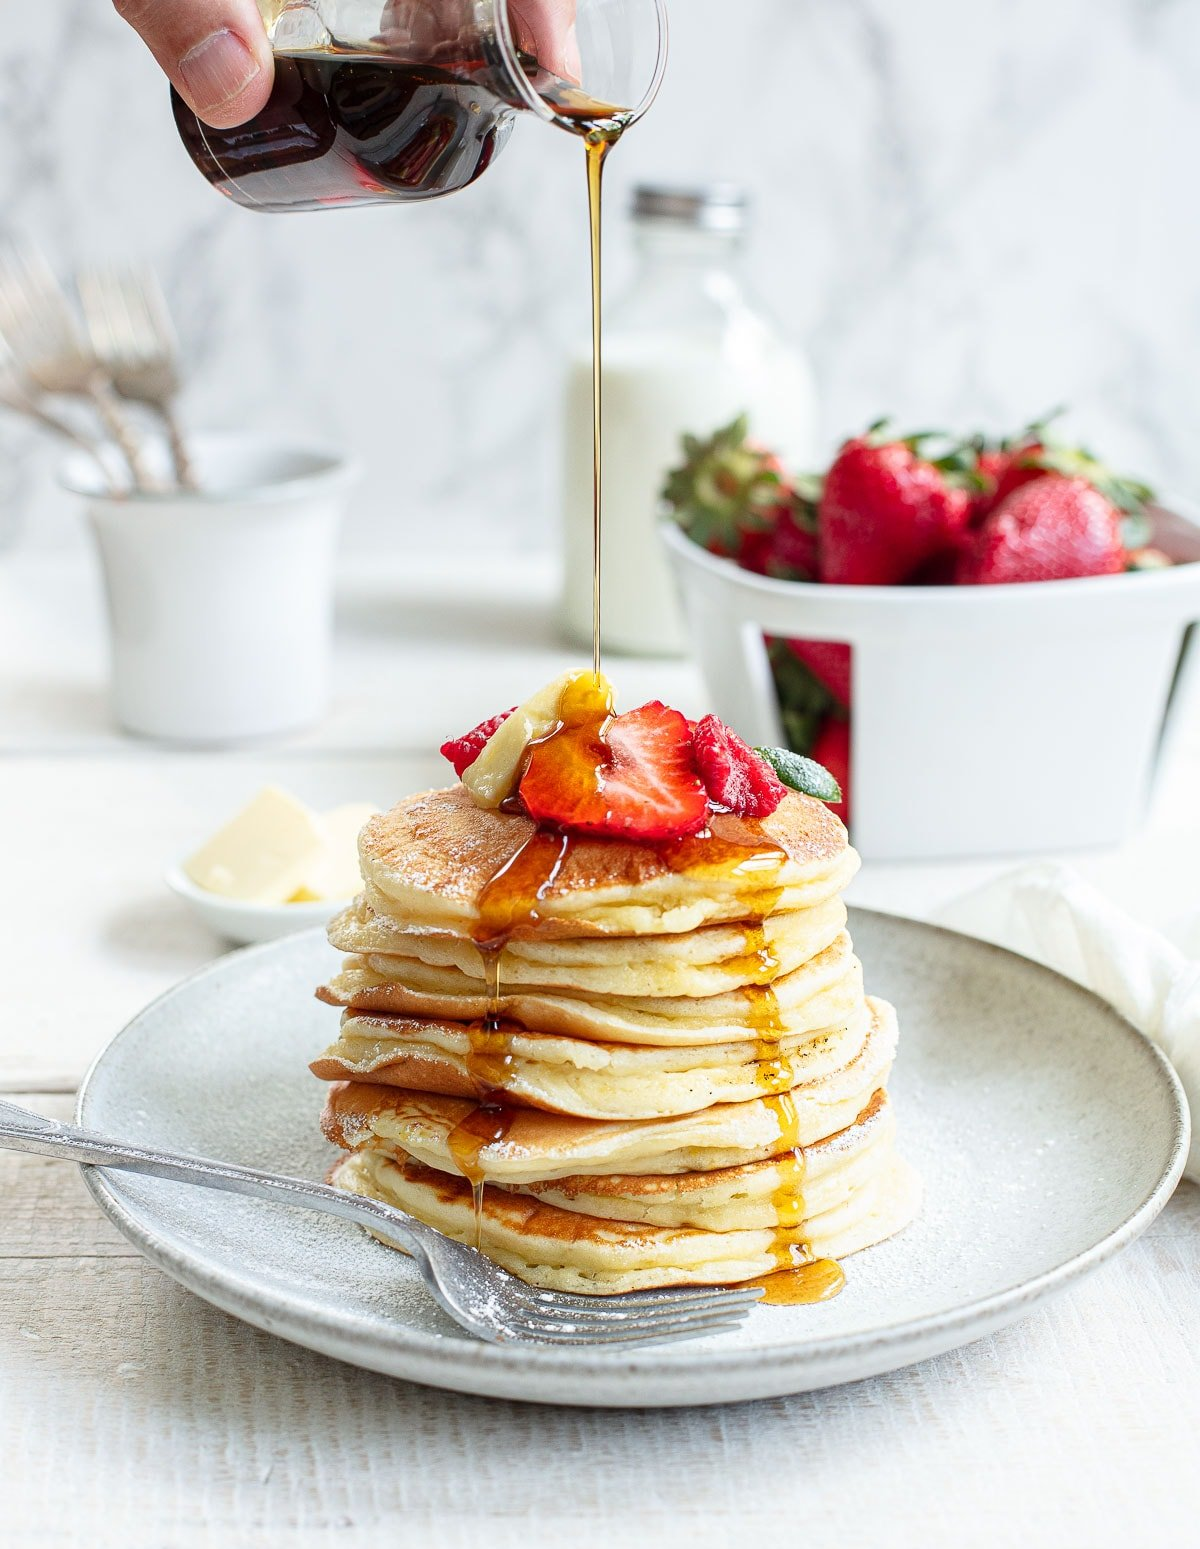 Maple syrup pouring over a stack of thick and fluffy buttermilk pancakes on a gray plate, topped with sliced strawberries, a pat of butter.